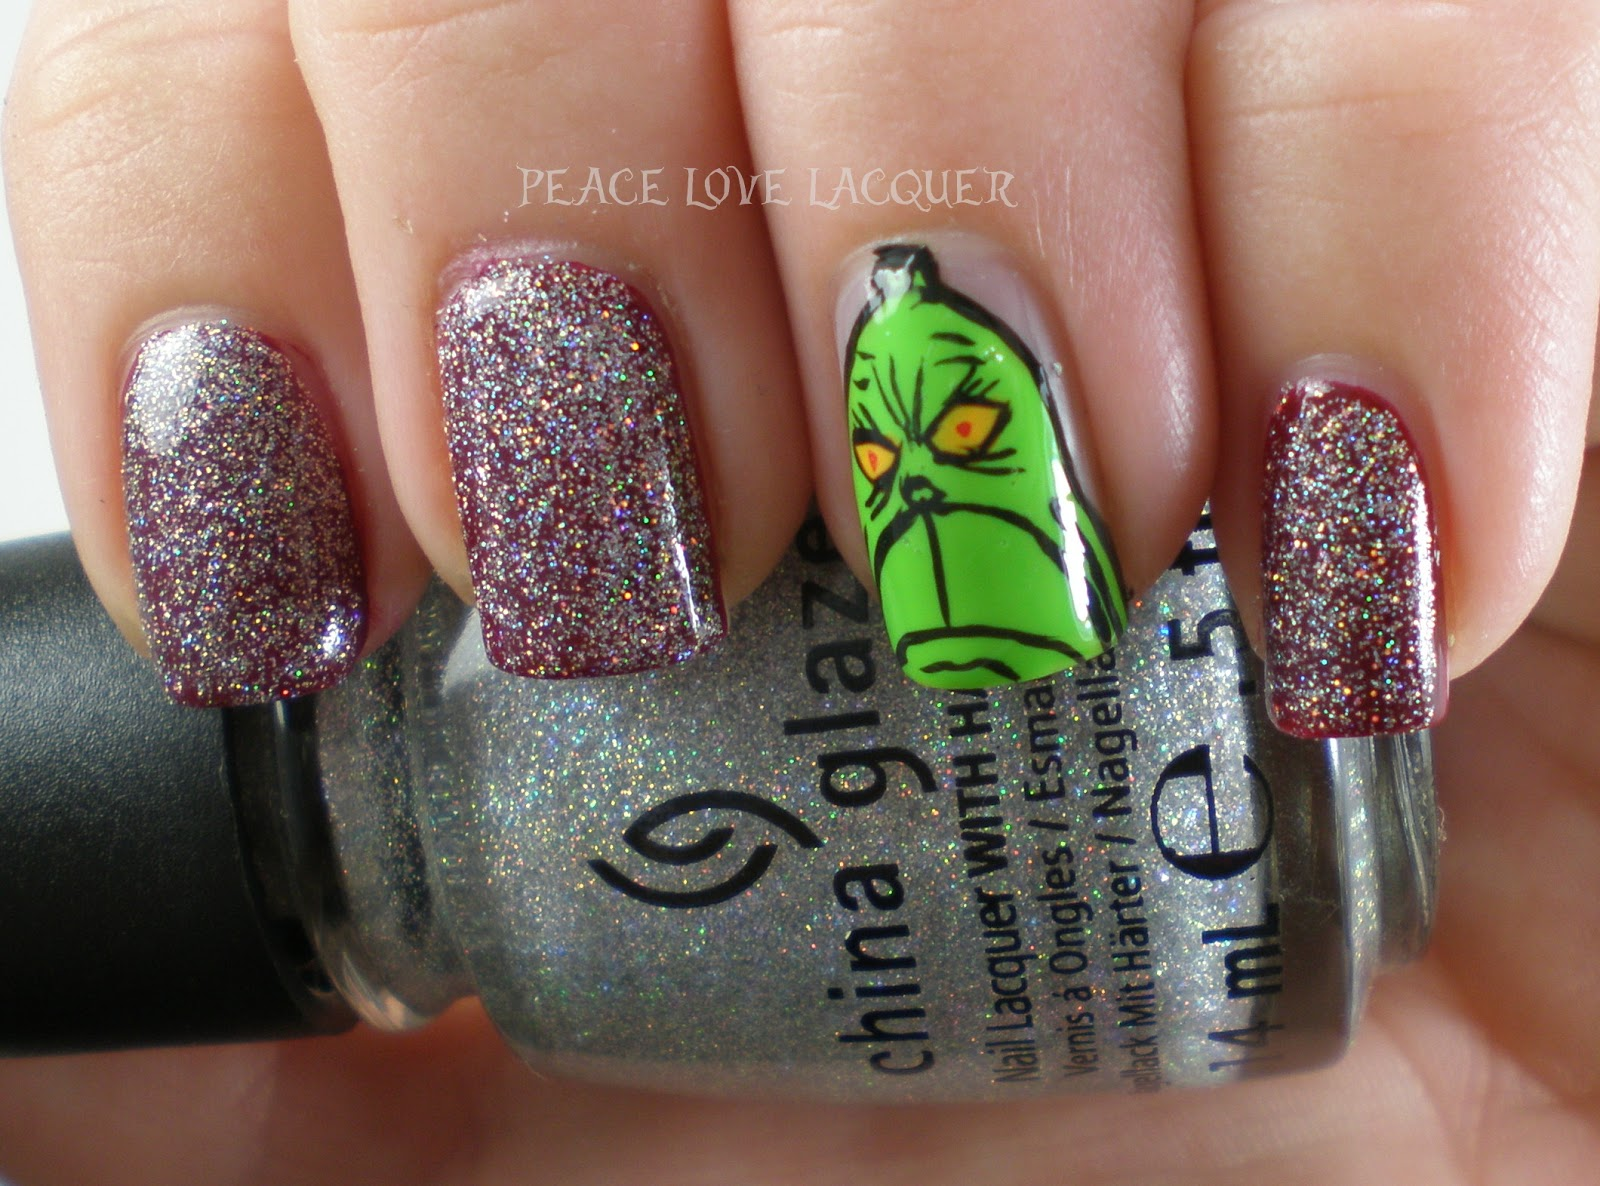 Peace Love Lacquer: 12 Days of Christmas Nail Art Days 2 - 4